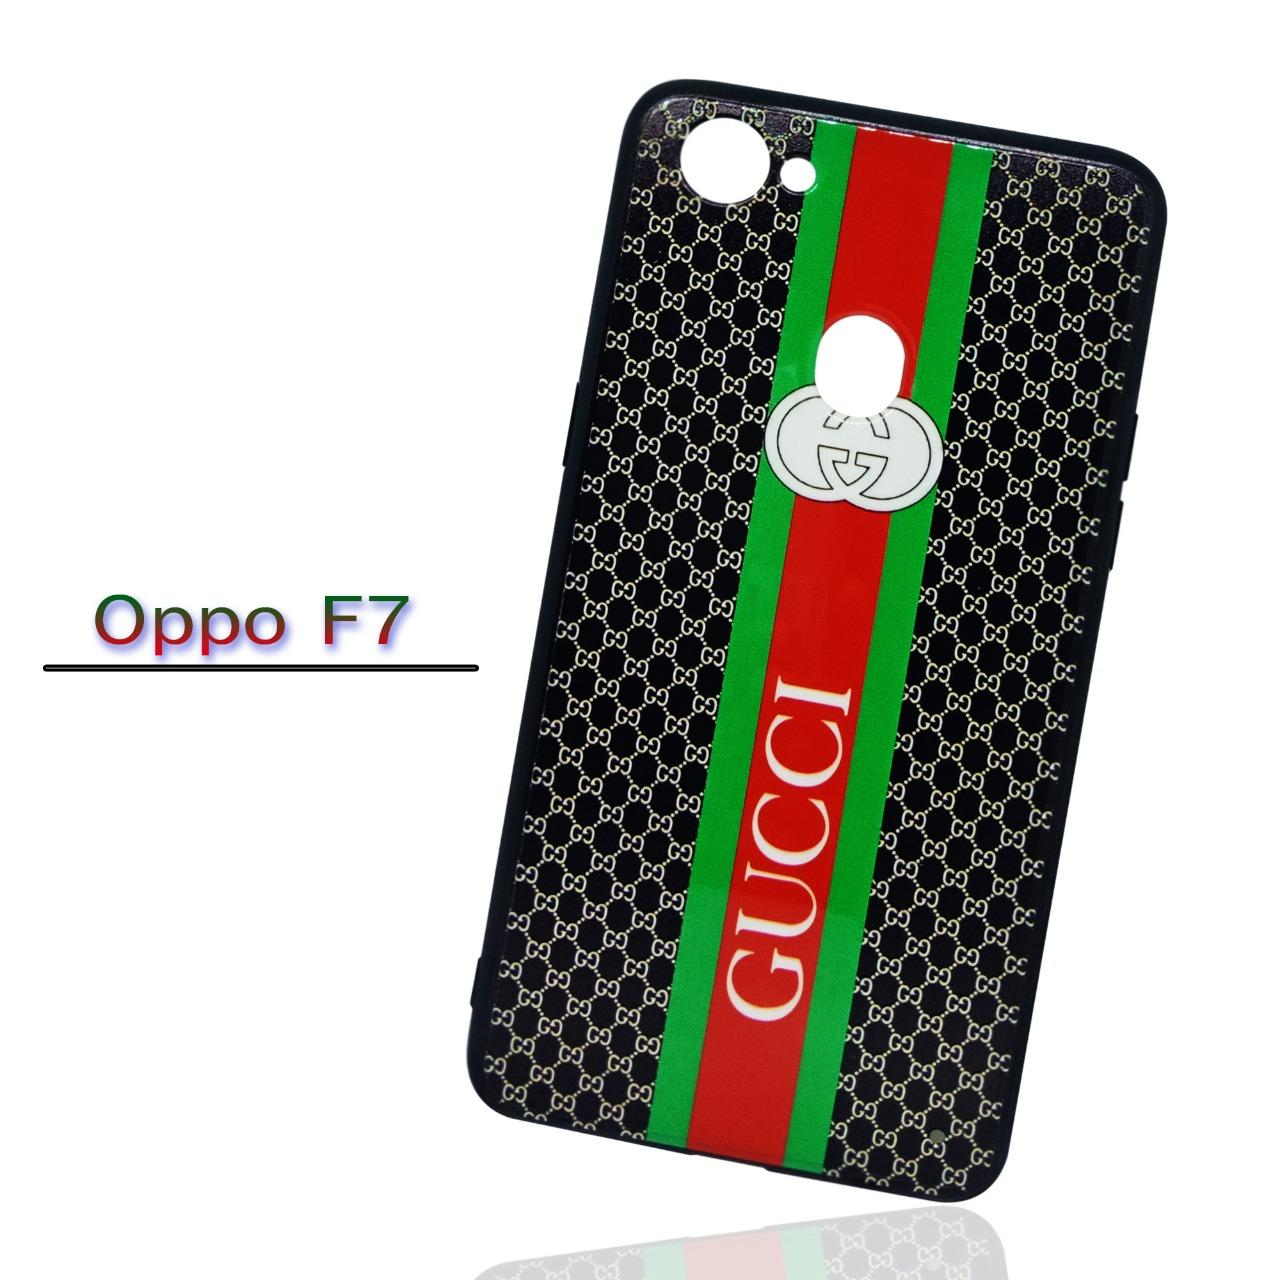 Marintri Case Oppo F7 New Fashion GUCCI